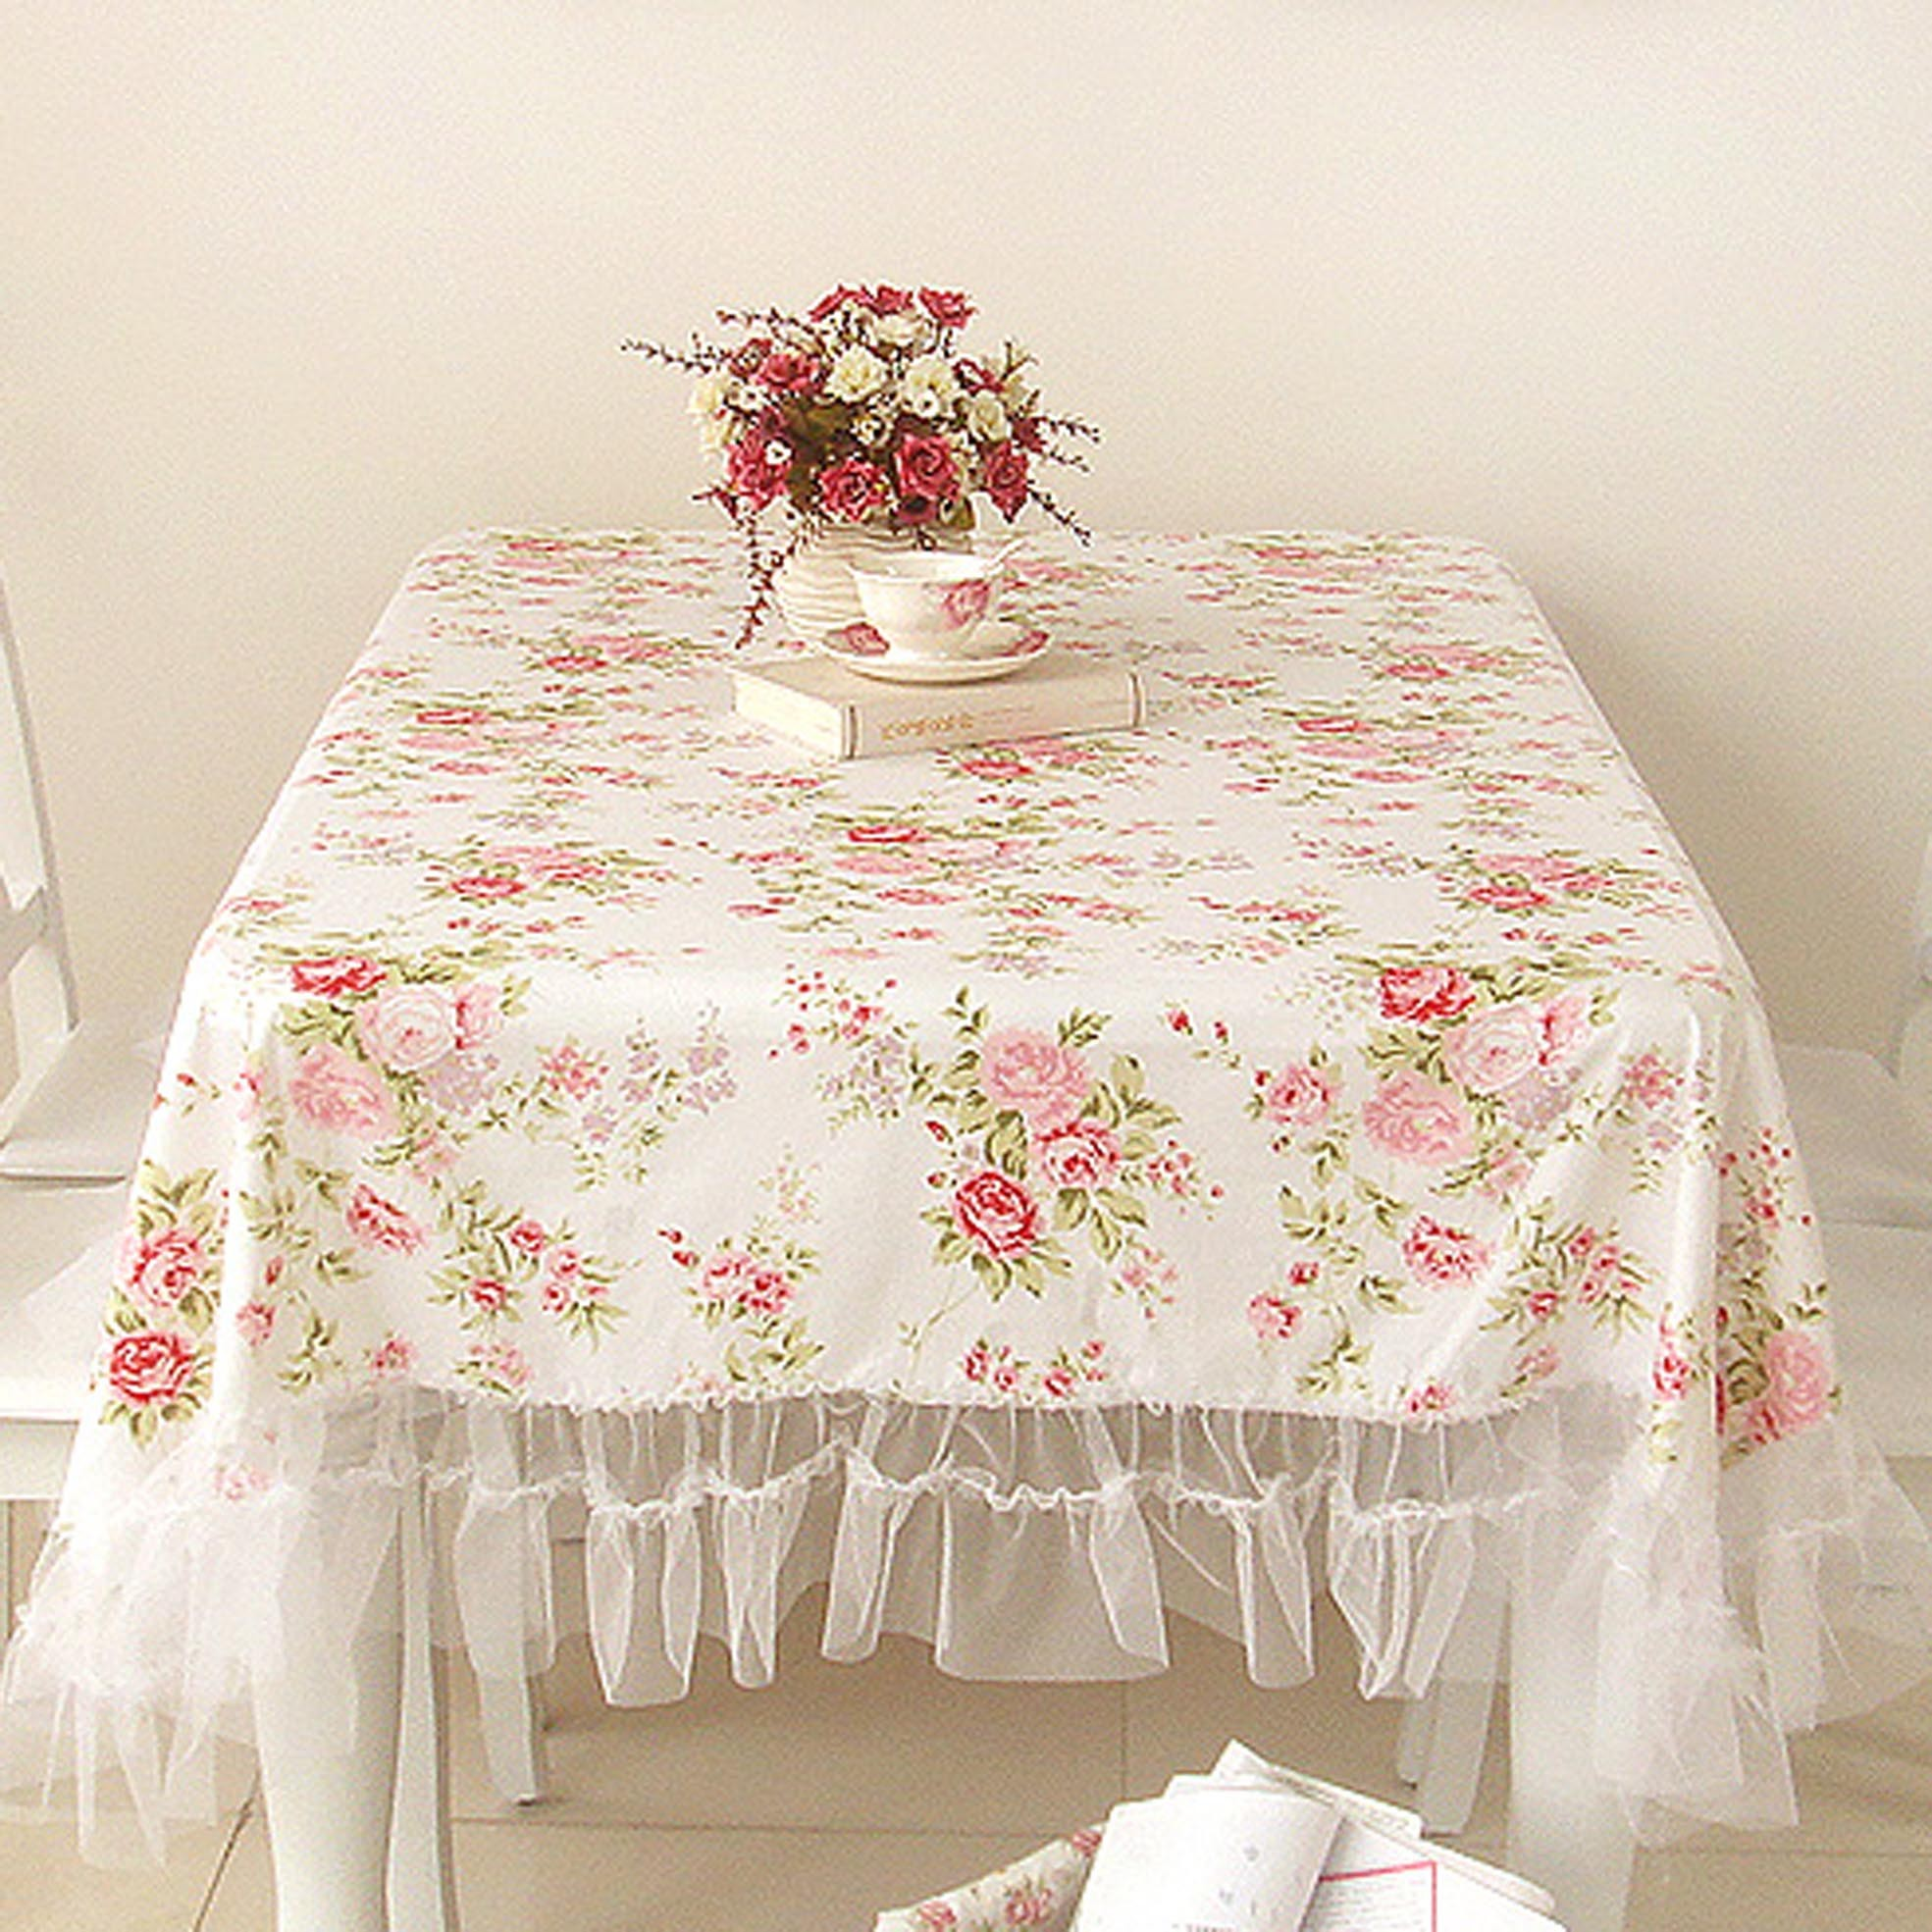 Country ruffled shower curtains - Modern Fabric Shower Curtain Home White Romance Oblong Tablecloth